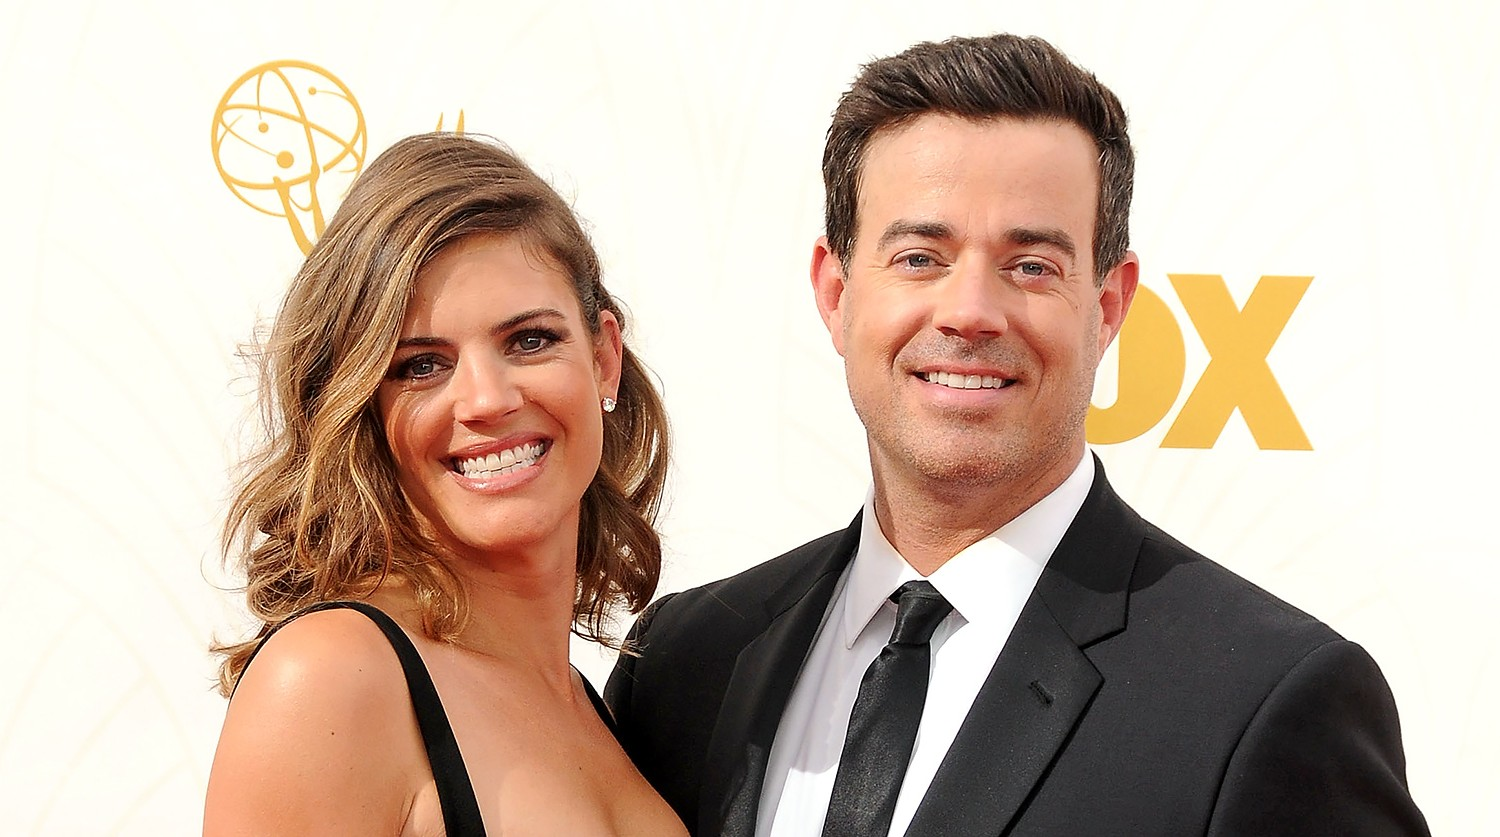 Carson daly gets married over christmas i wanted a hoverboard i